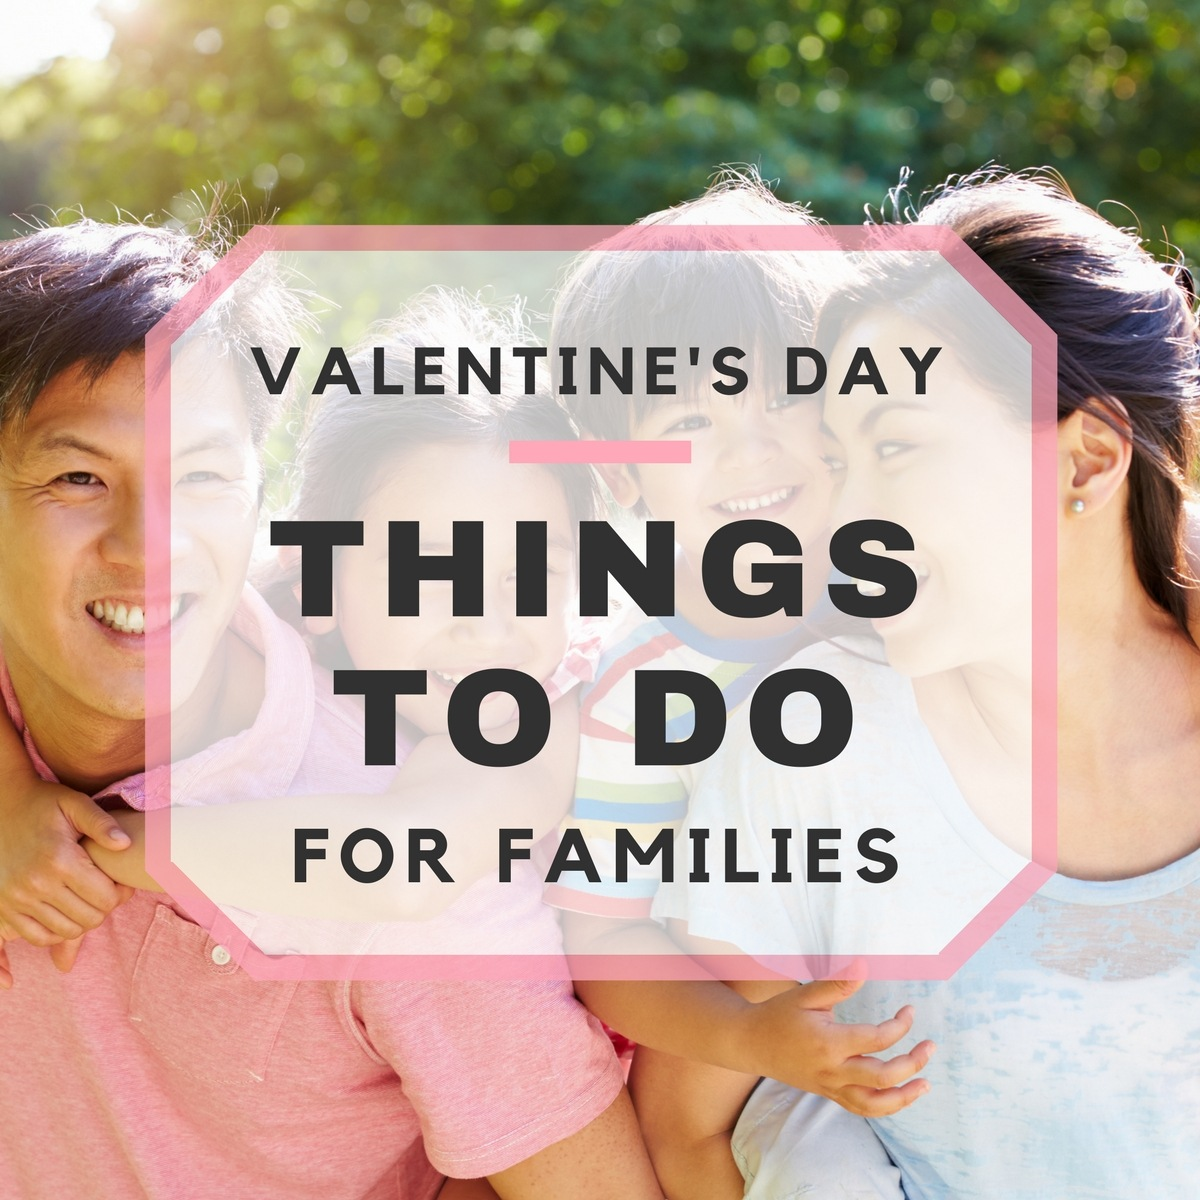 25 Family Things to Do on Valentine's Day